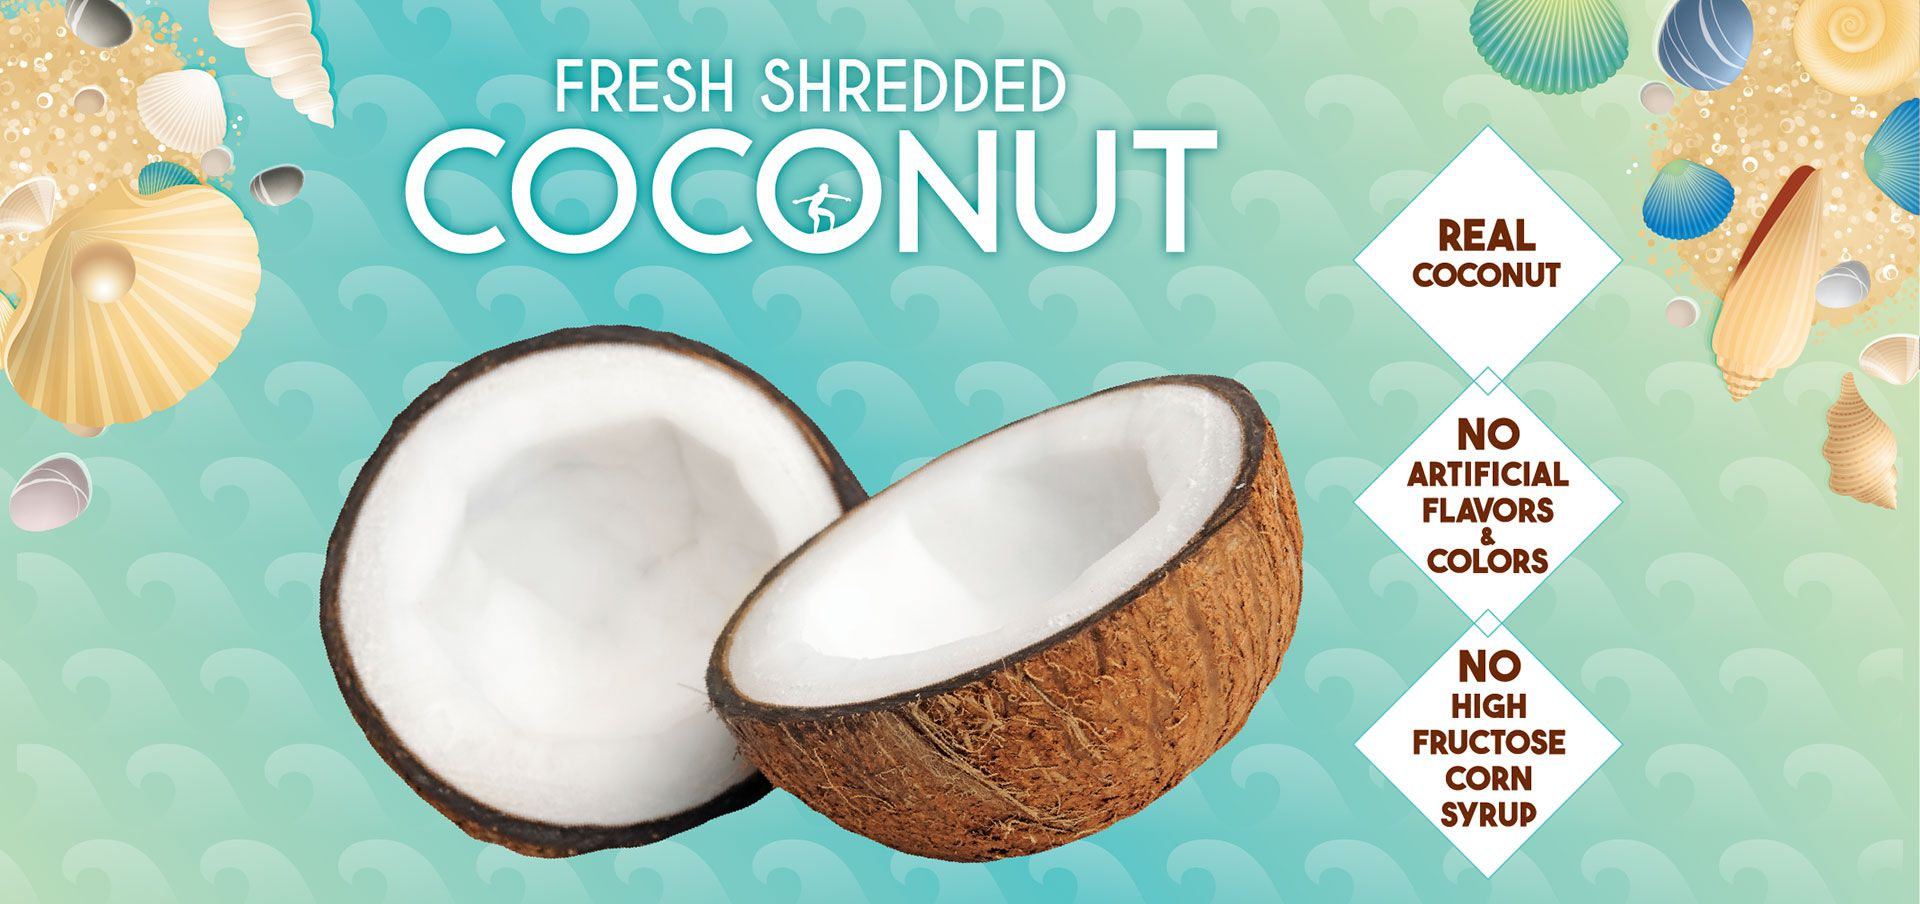 fresh shredded coconut label image